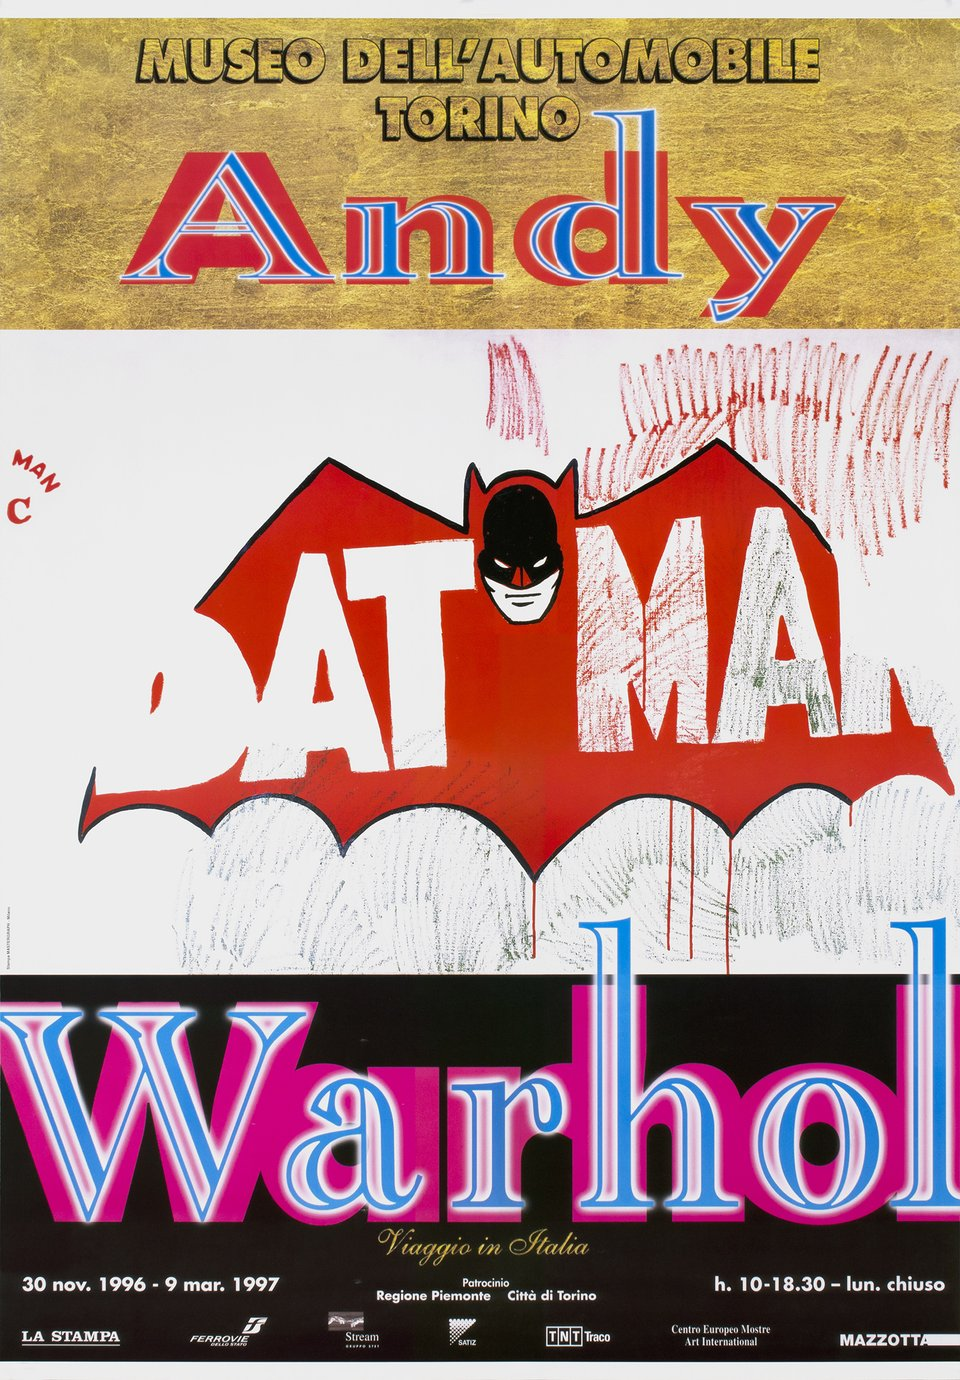 Andy Warhol, Batman, Museo dell'automobile Torino, 30 nov. 1996 - 9 mars 1997 – Affiche ancienne – Andy WARHOL – 1996